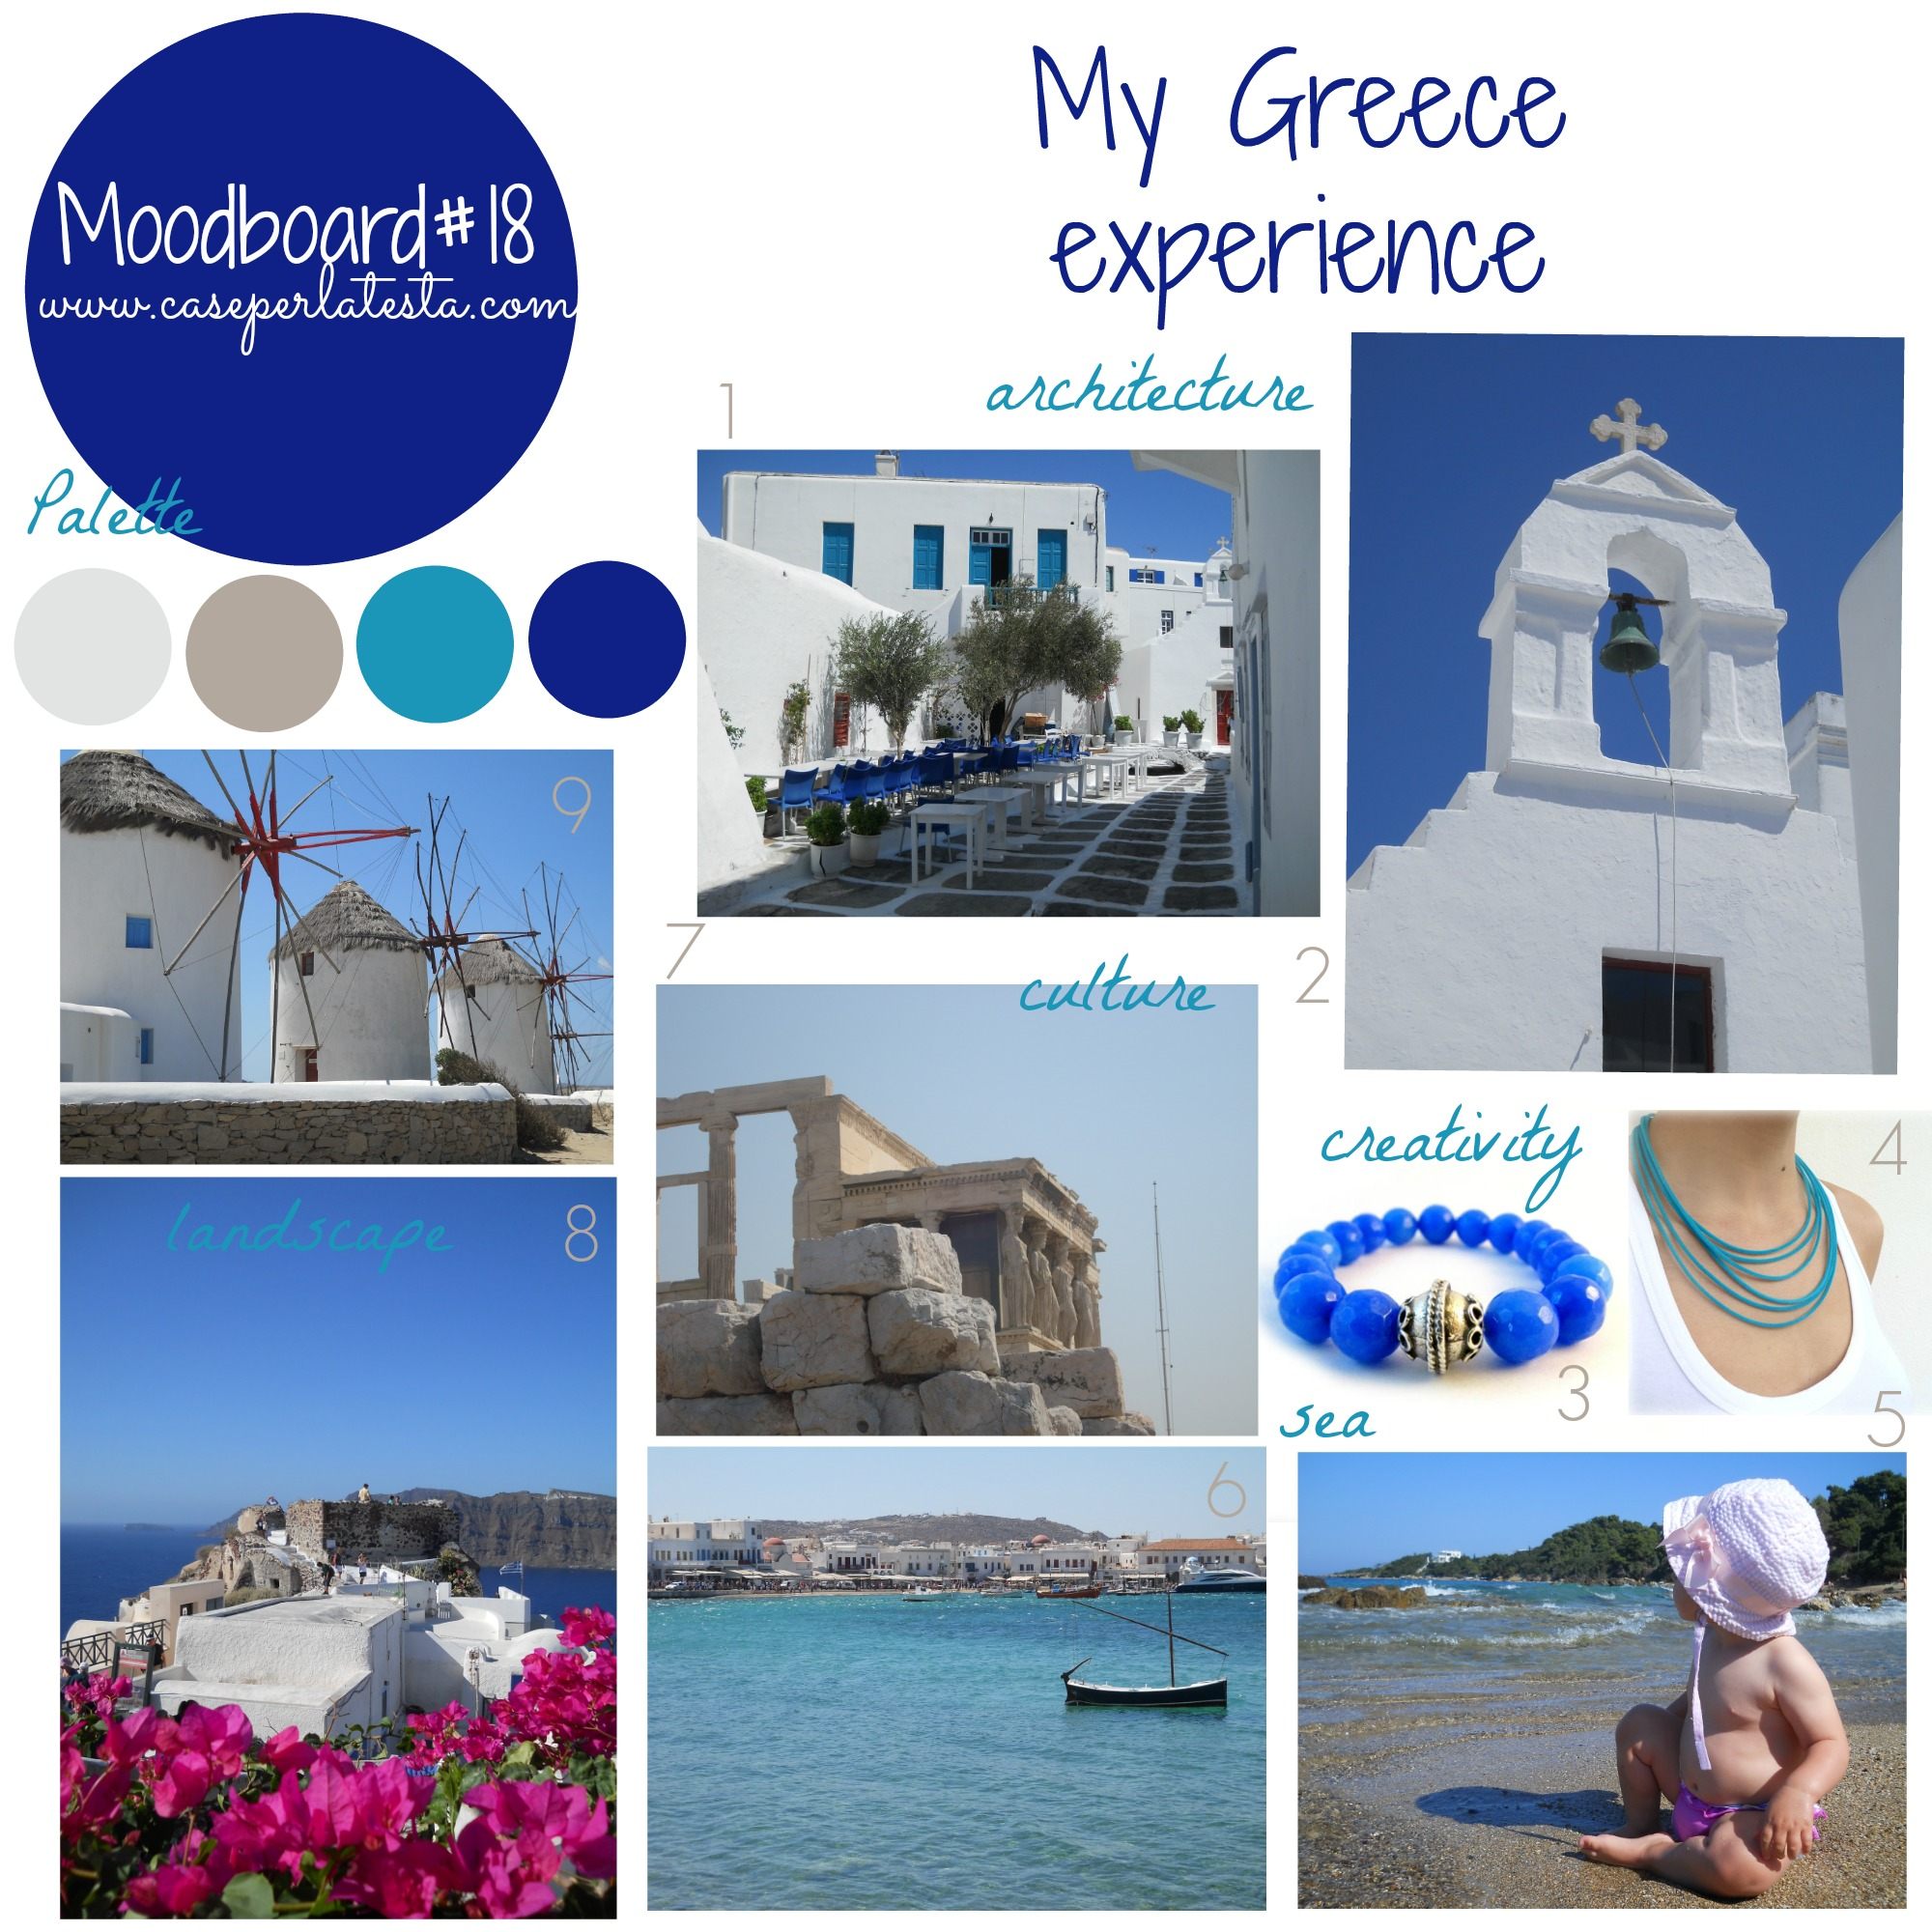 Moodbard#18_My_Greece_Experience